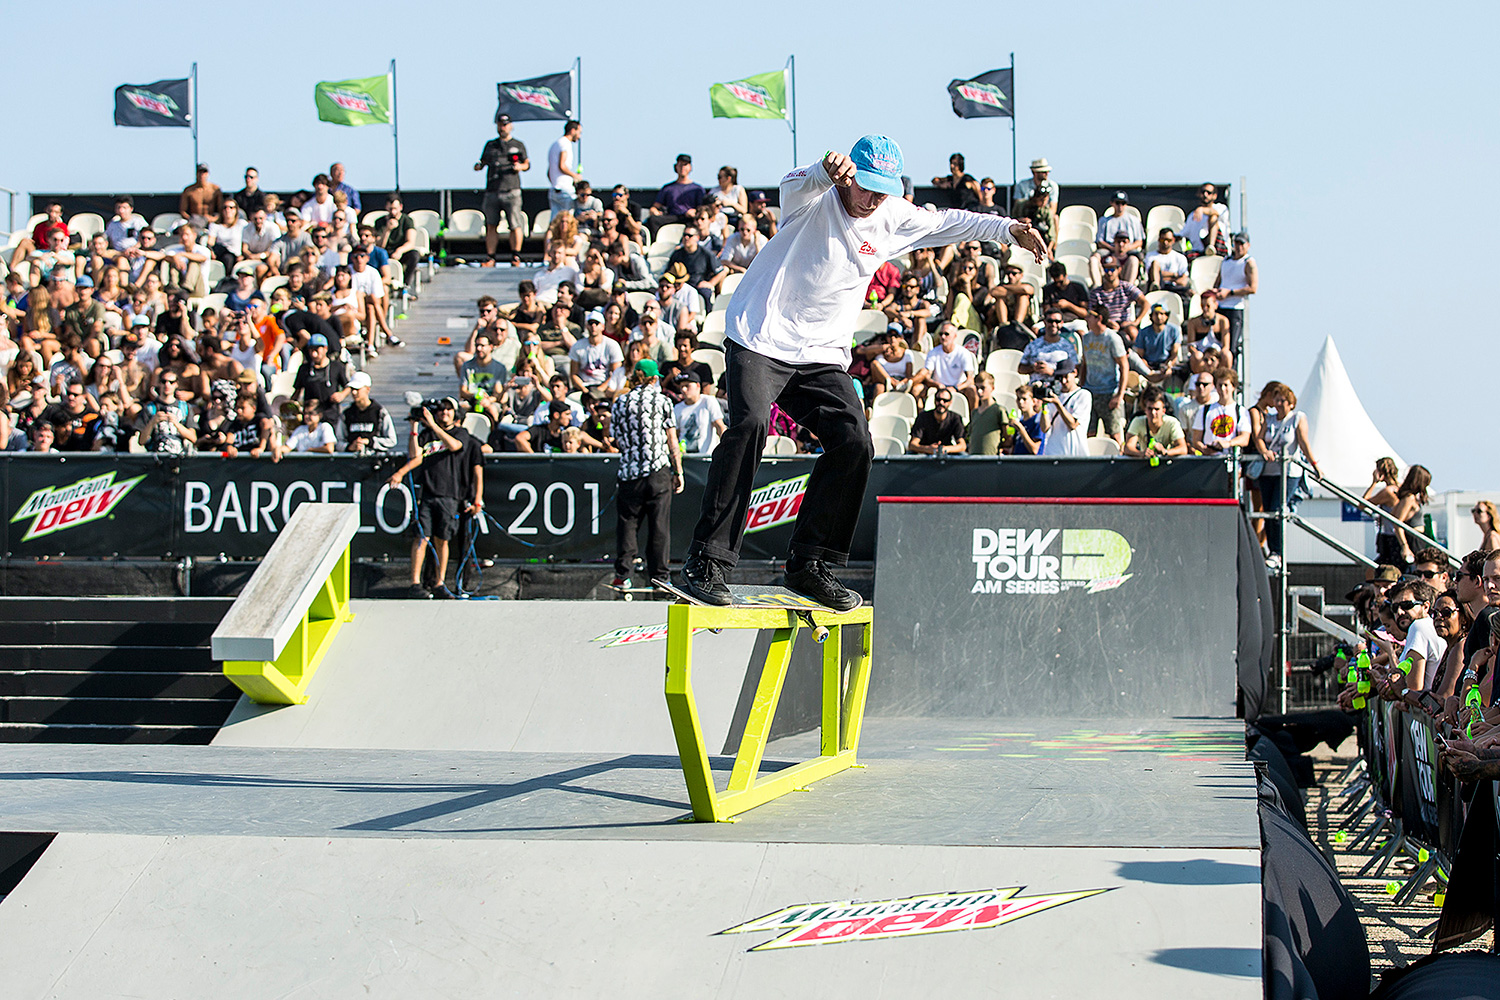 Barcelona Is Basically Heaven On Earth For Skateboarders Dew Tour Am Series 2017 Chris Colbourn